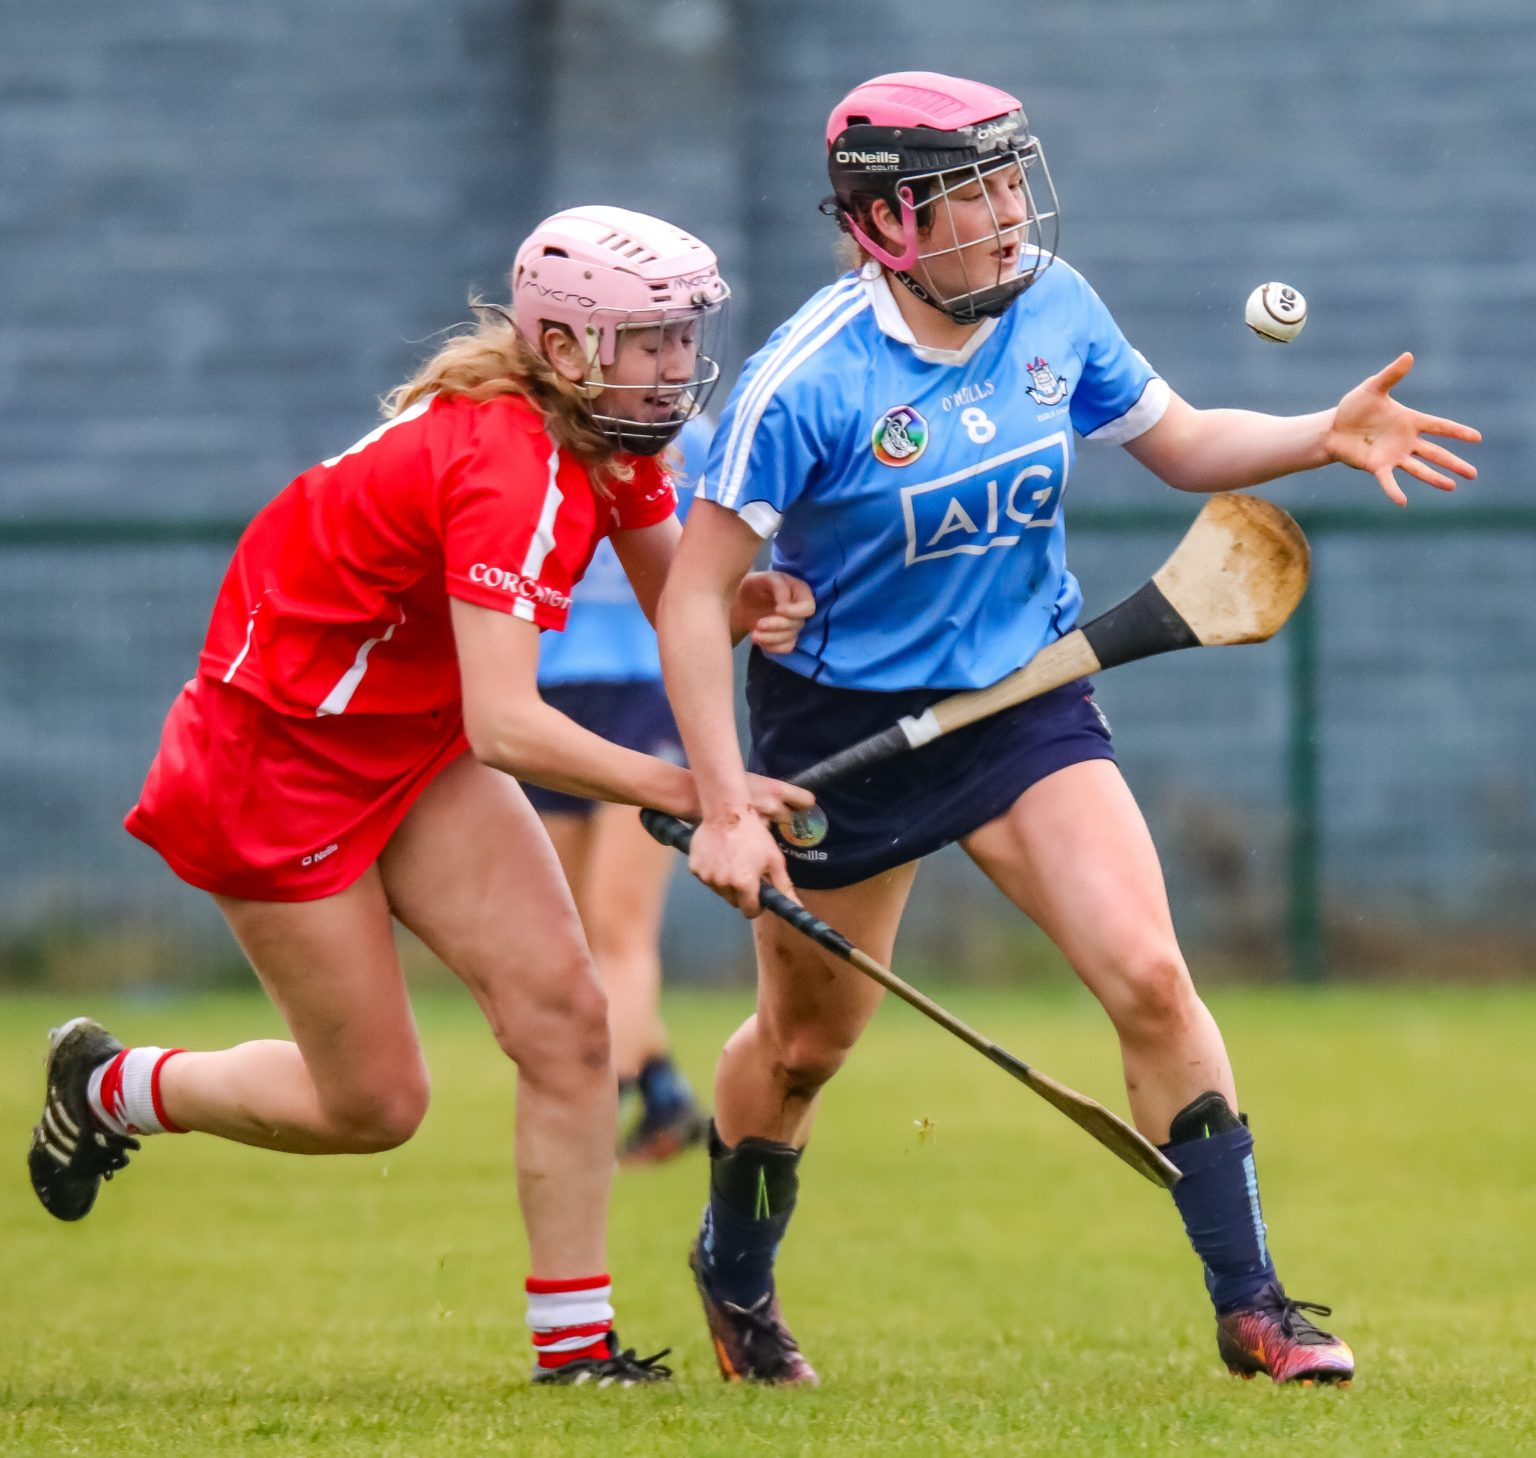 Action From Today's All Ireland Minor Camogie Championship Game Between Dublin And Cork